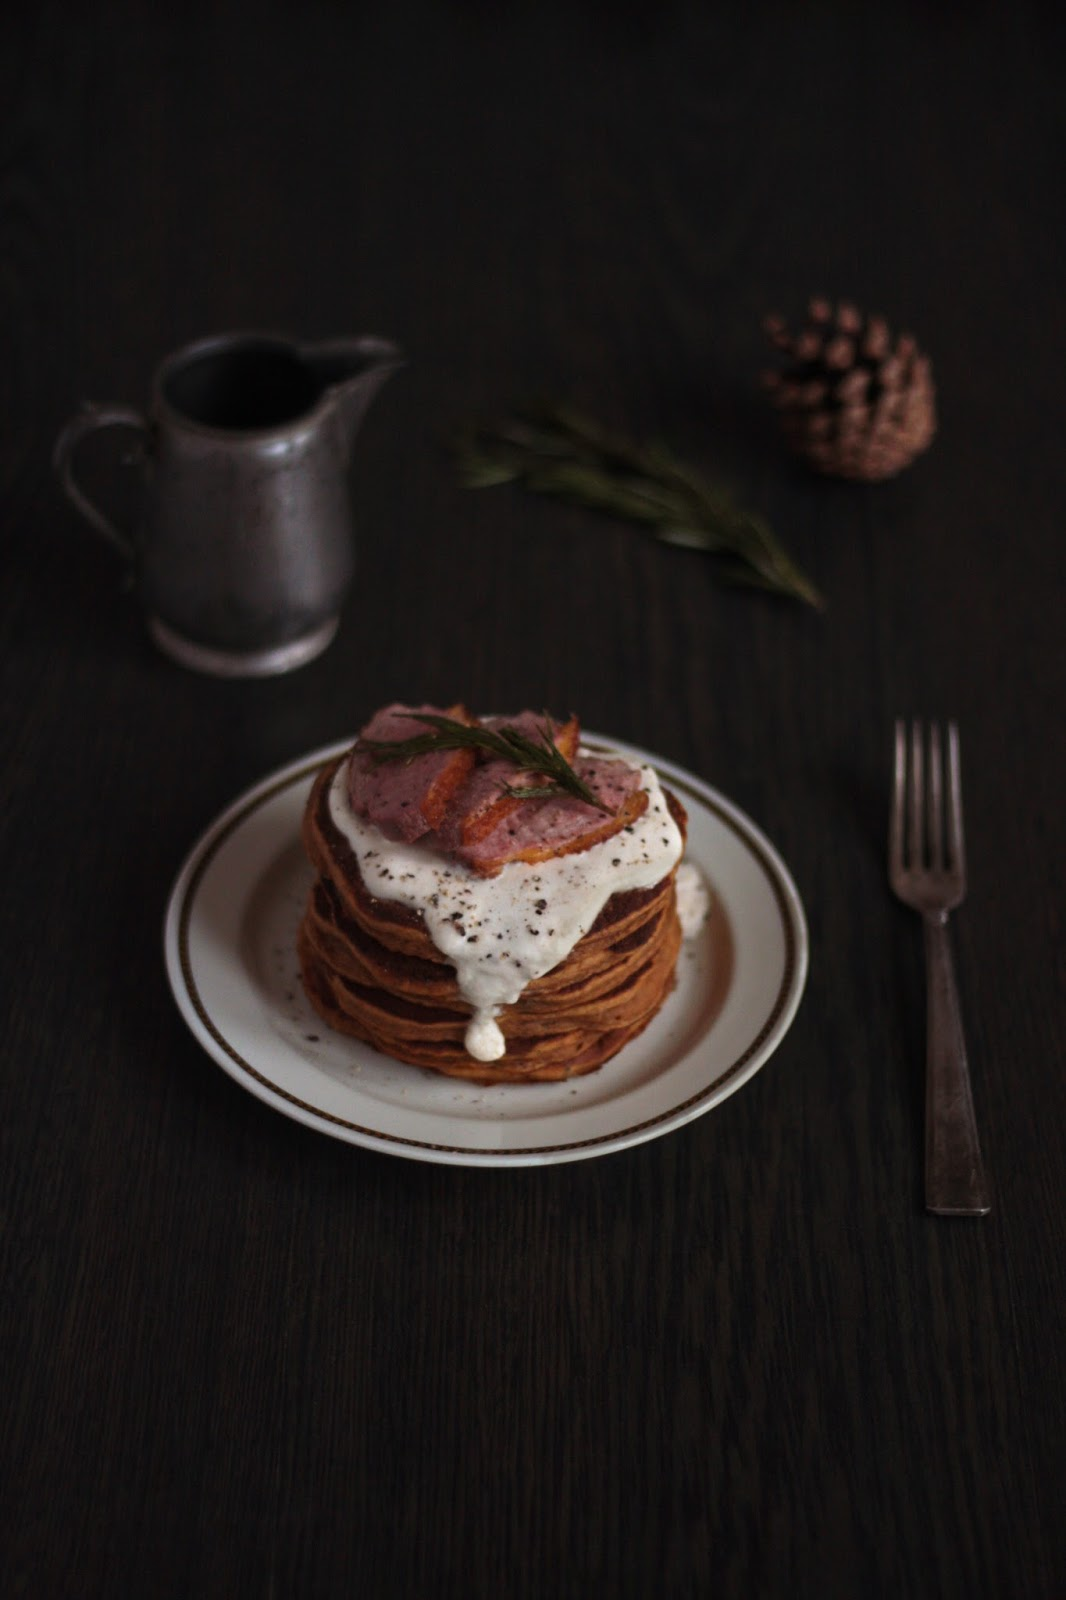 Xmas Duck and Sweet Potato Pancakes Recipe with homemade Rosemary Sauce - brough to you by Pancake Stories